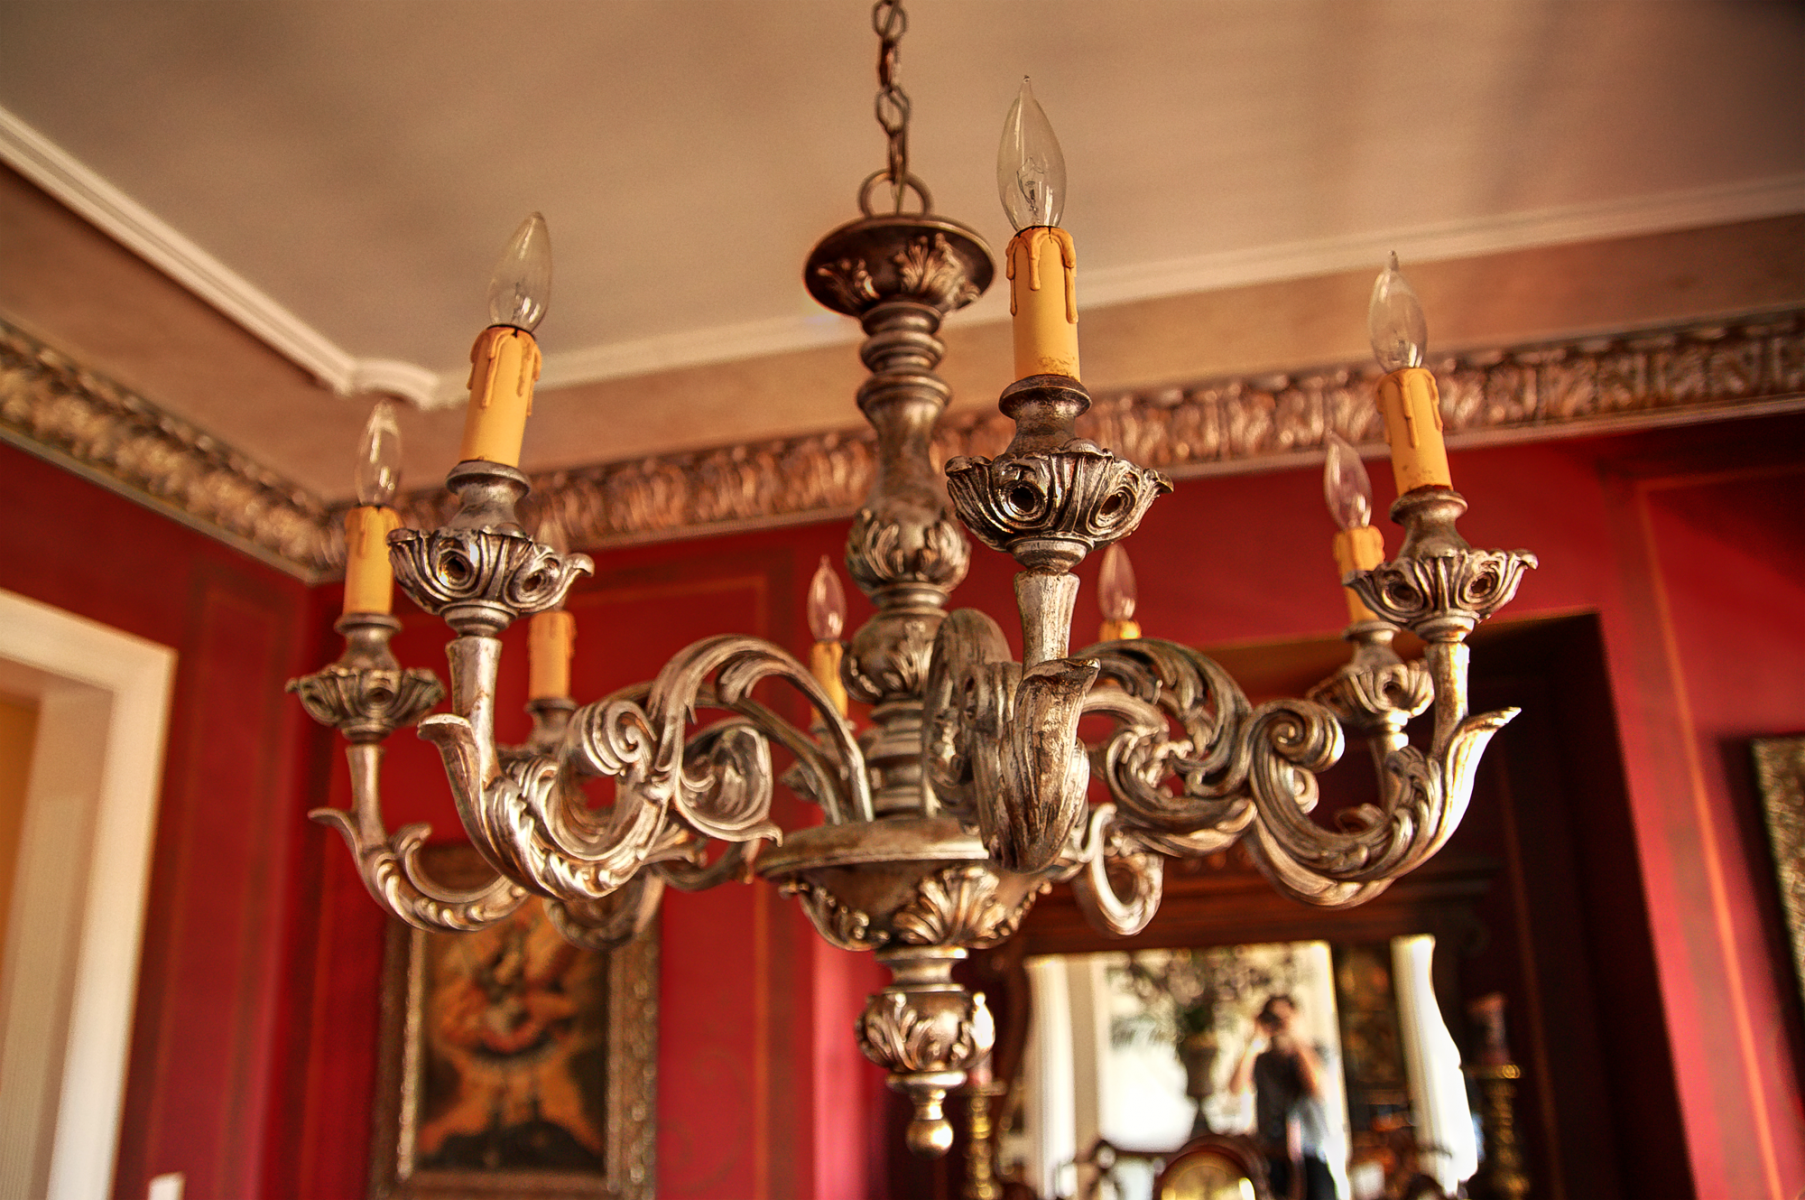 Chandelier design change finished:  from its previous garish gold to this beautiful gilt and antique silver look.